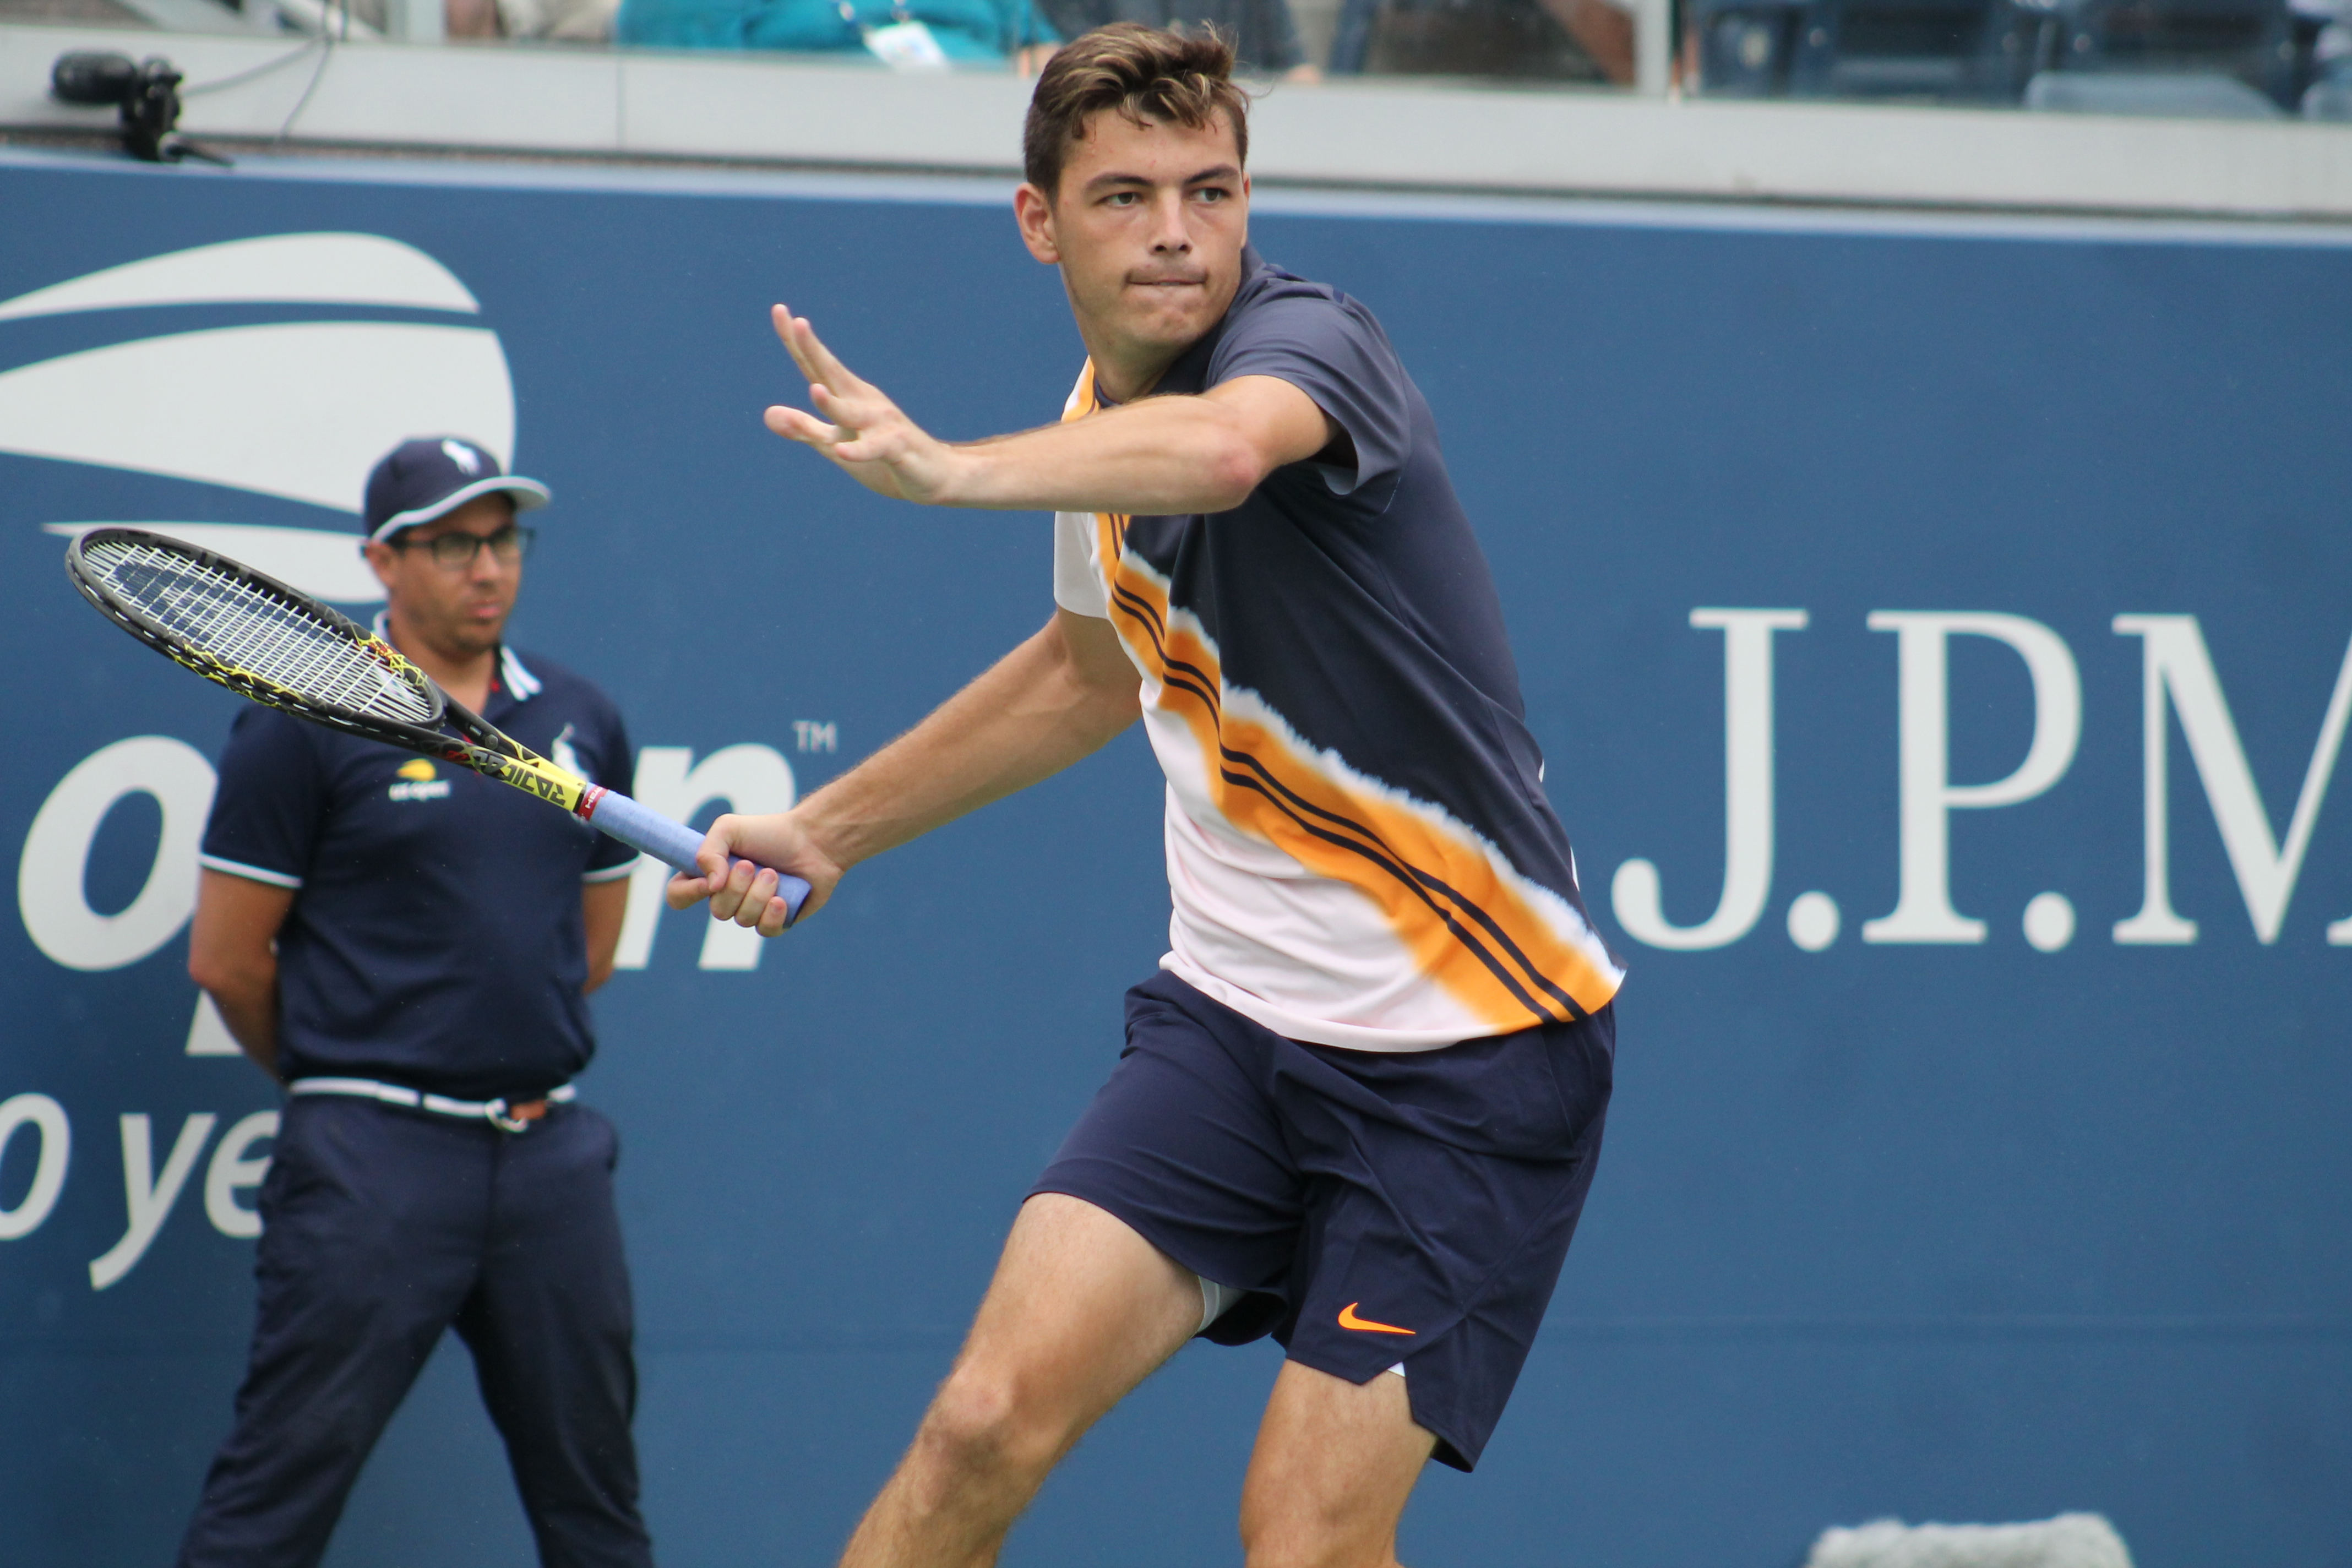 American Taylor Fritz fell to Austrian Dominic Thiem in Day Five action at the 2018 U.S. Open